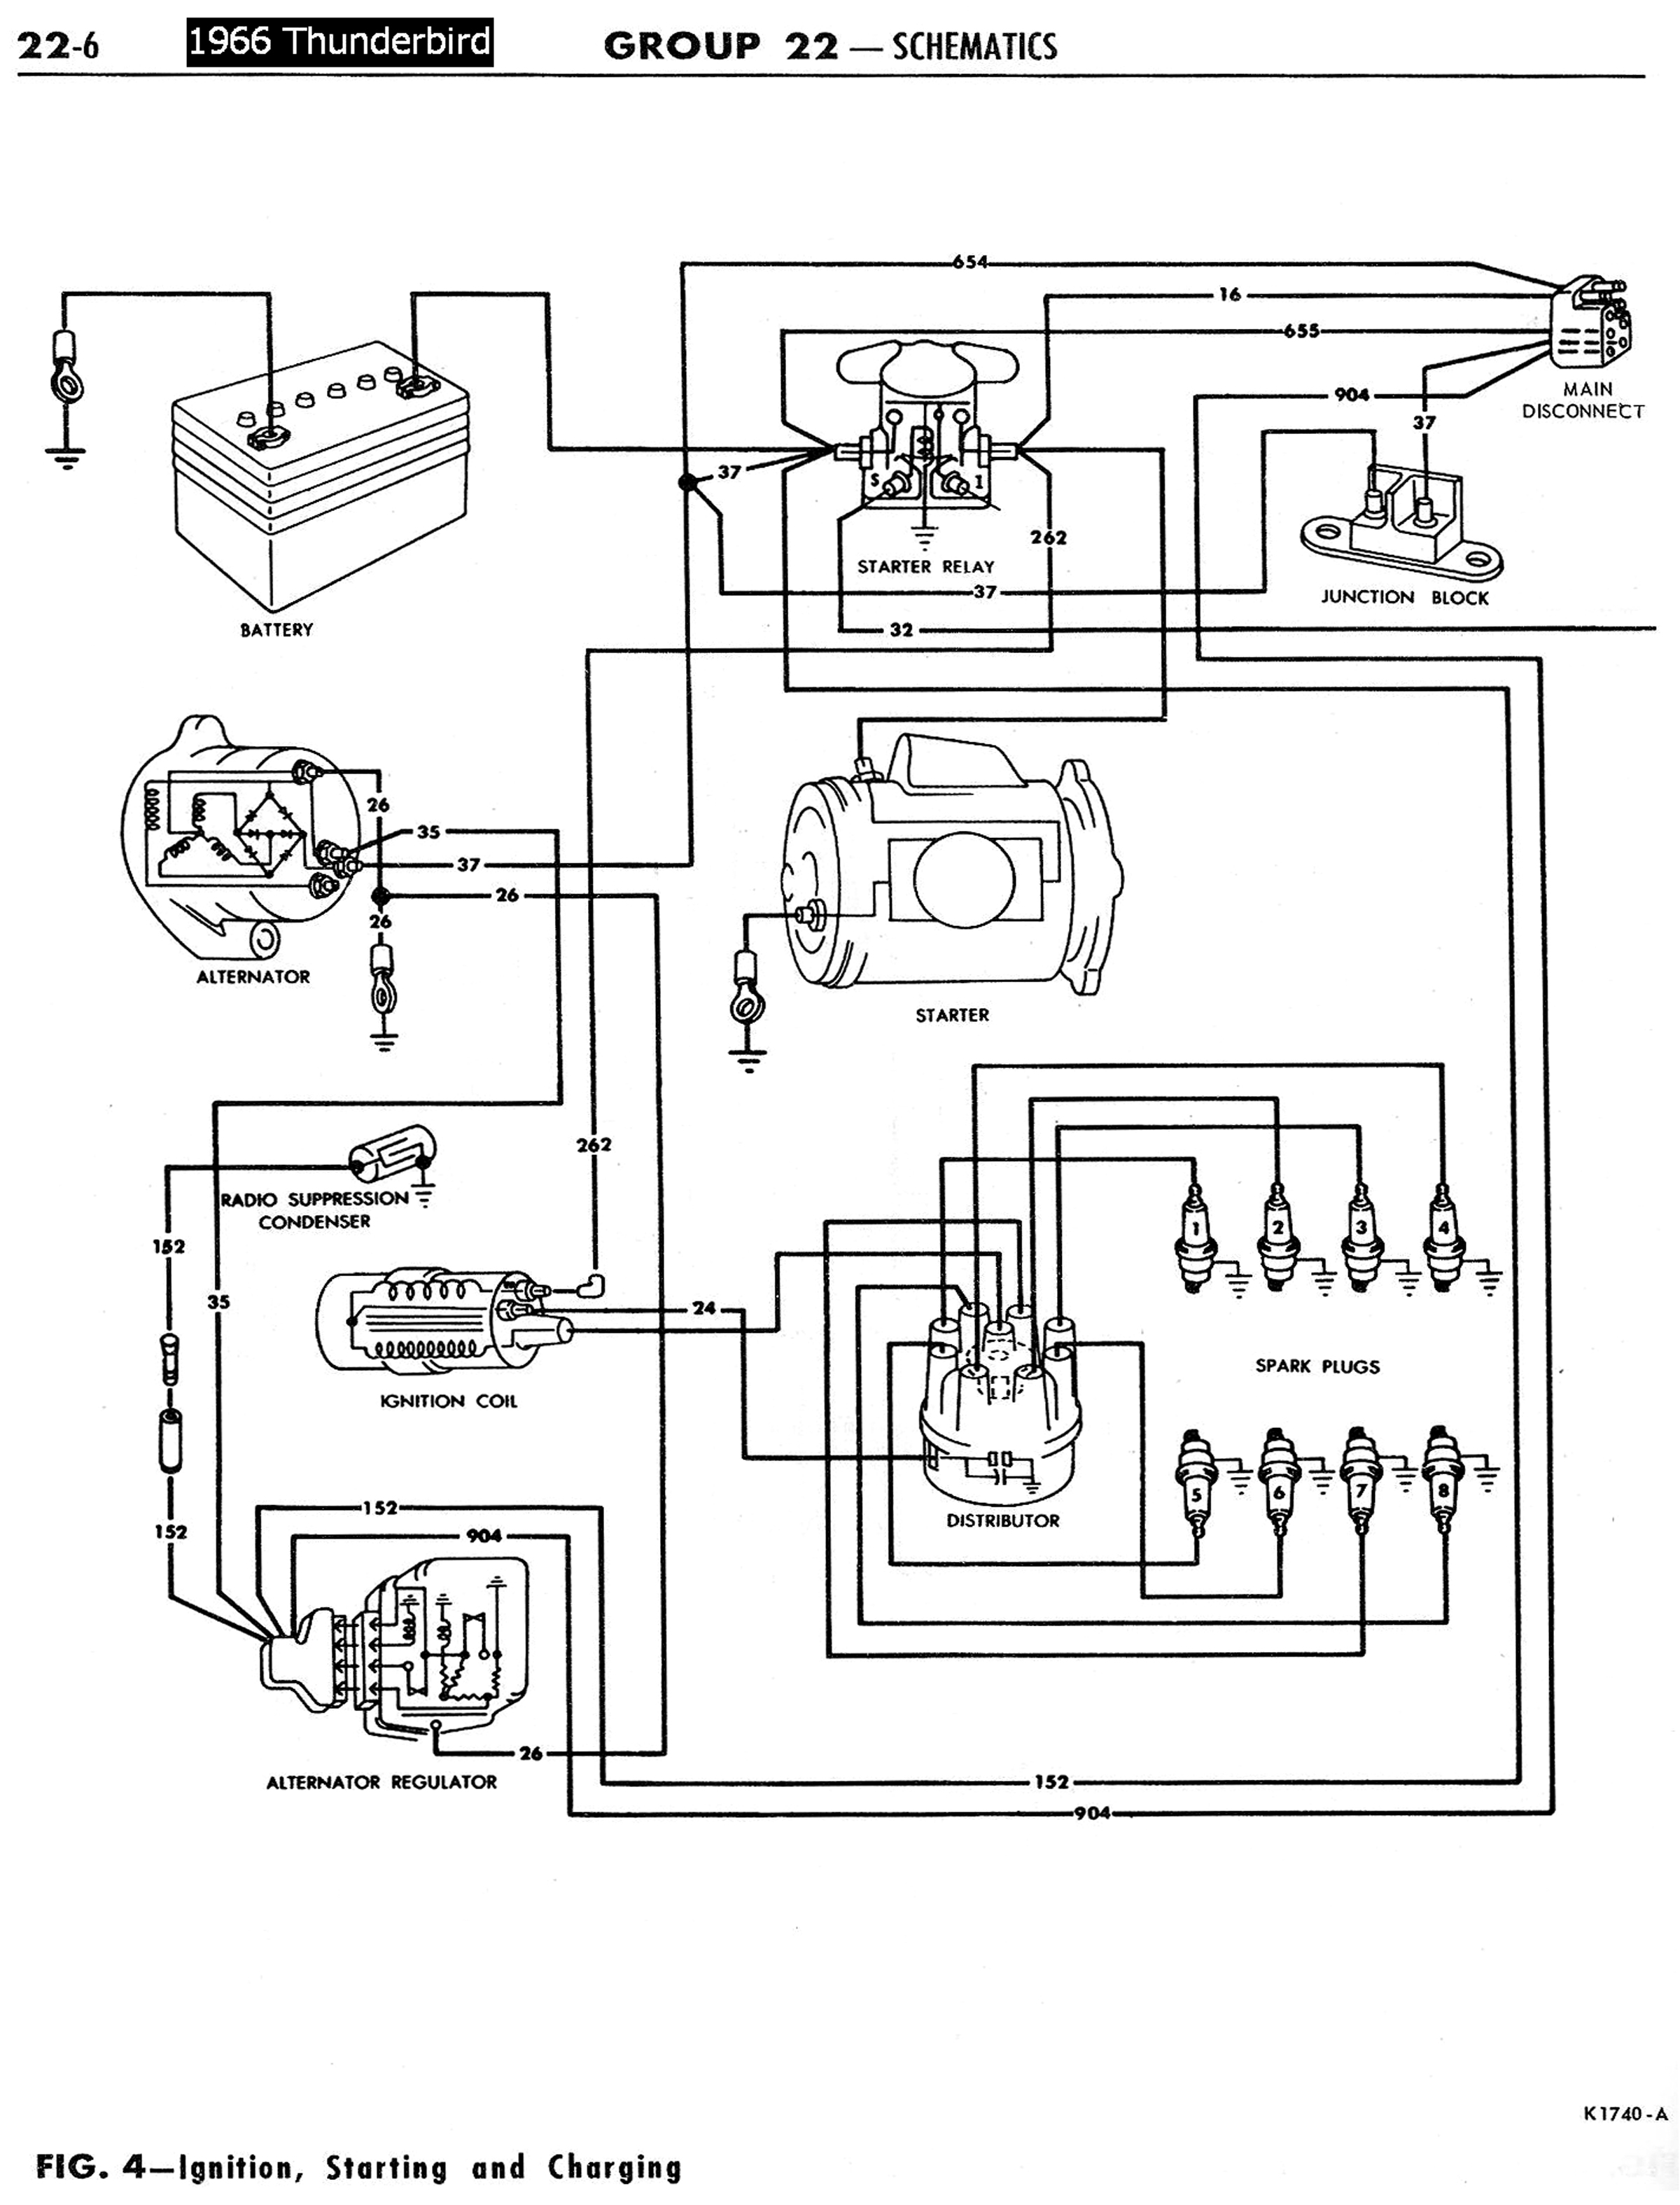 Wrg Thunderbird Power Window Wiring Diagram